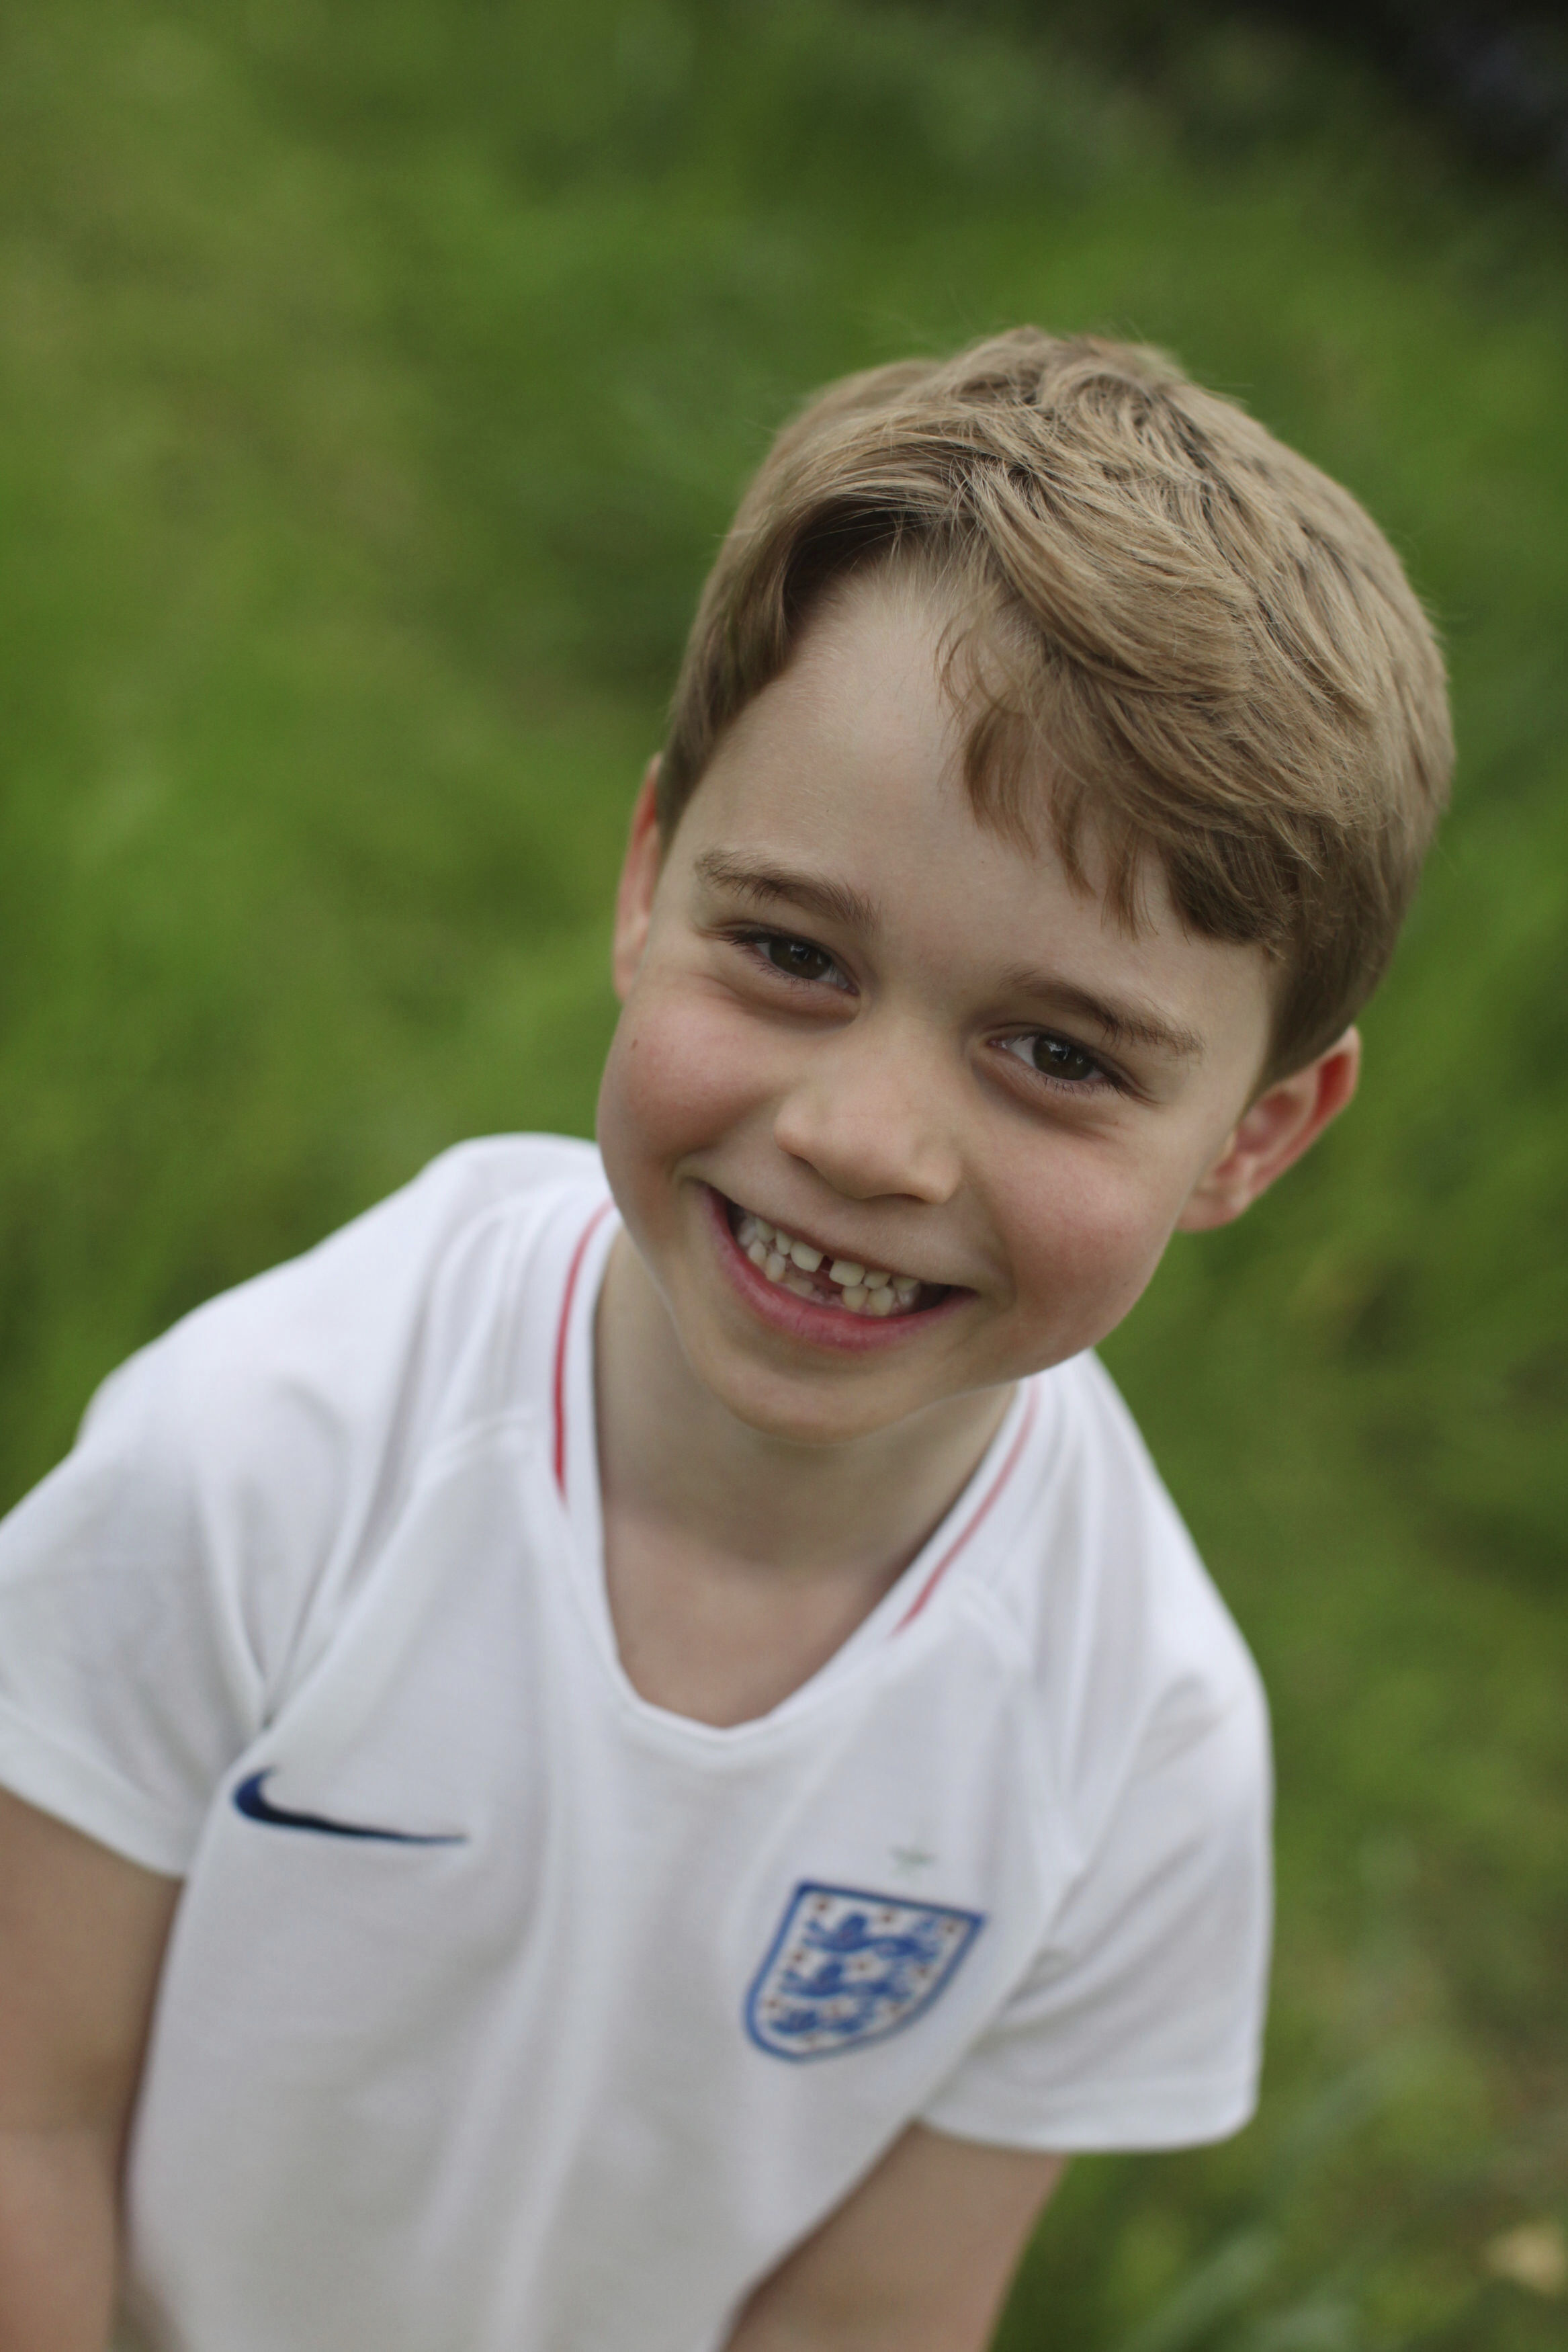 In this undated photo released by the Duke and Duchess of Cambridge on Sunday, July 21, 2019, Britain's Prince George poses for a photo taken by his mother, Kate, the Duchess of Cambridge, in the garden of their home at Kensington Palace, London. Prince George will celebrate his sixth birthday on Monday, July 22. (The Duchess of Cambridge via AP)